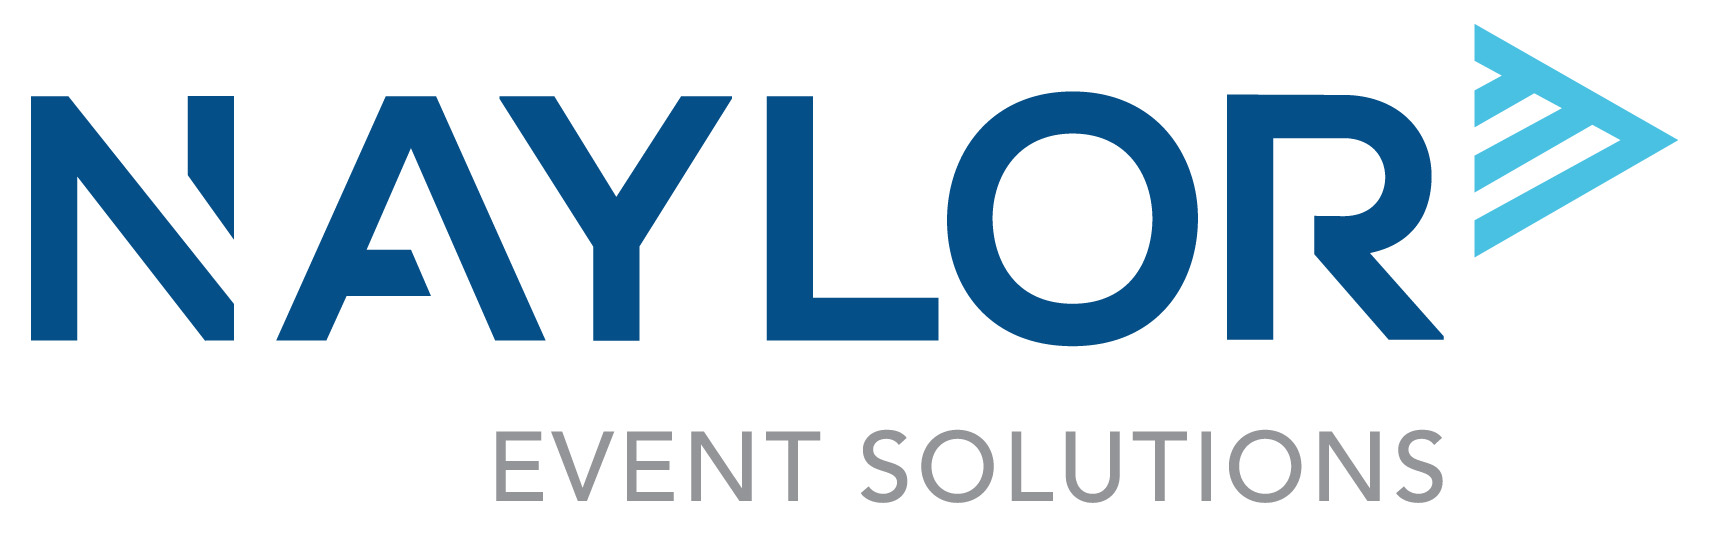 Naylor Event Solutions